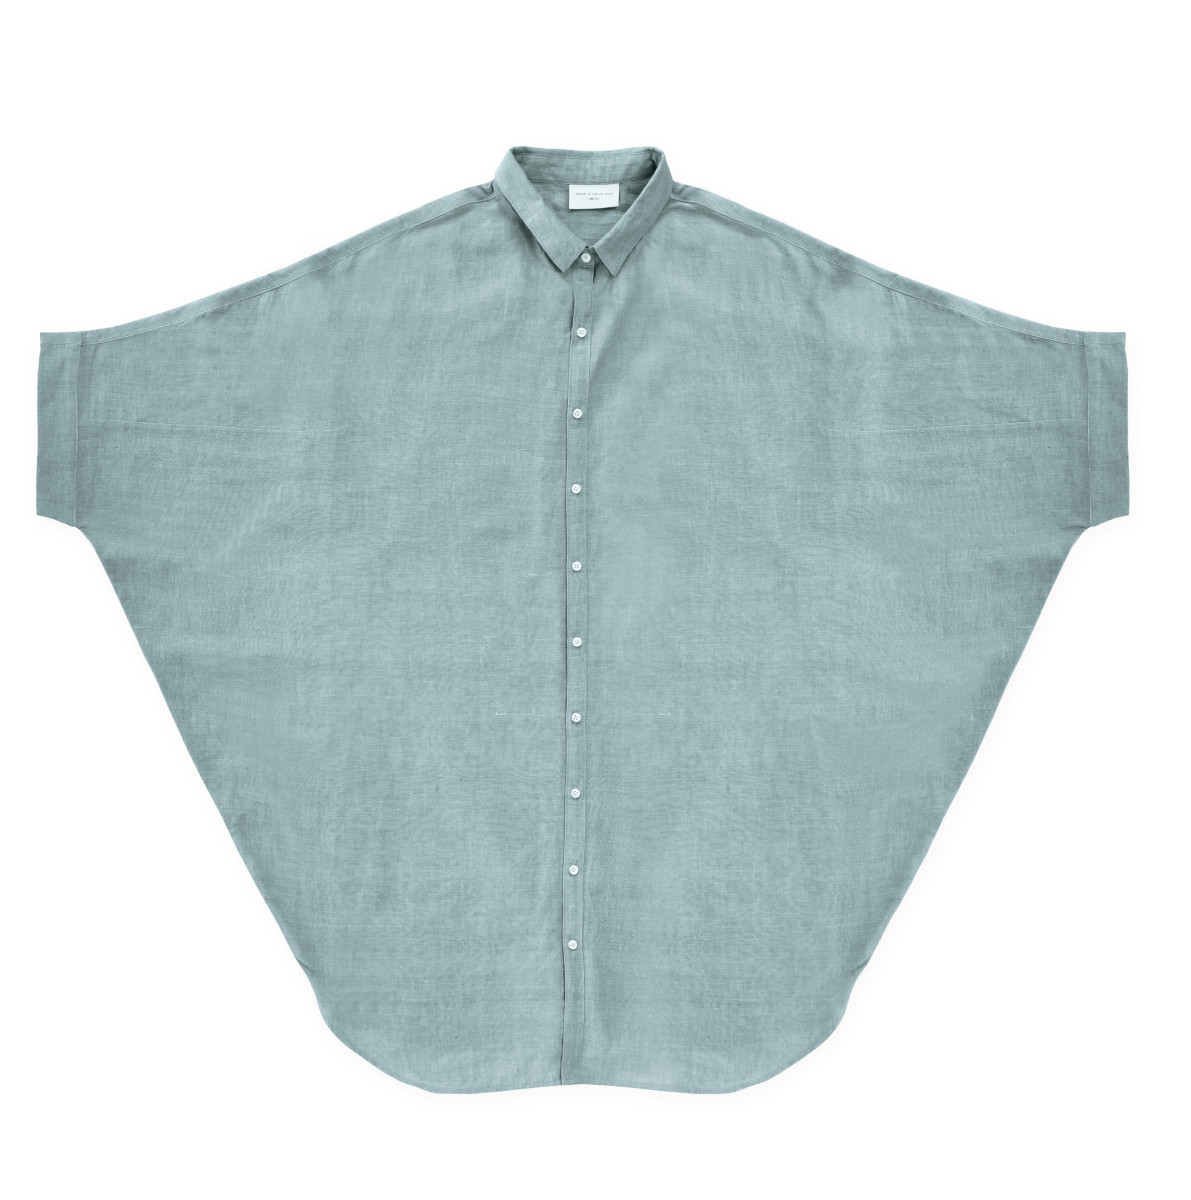 Nona cocoon shirt, $52,available here.